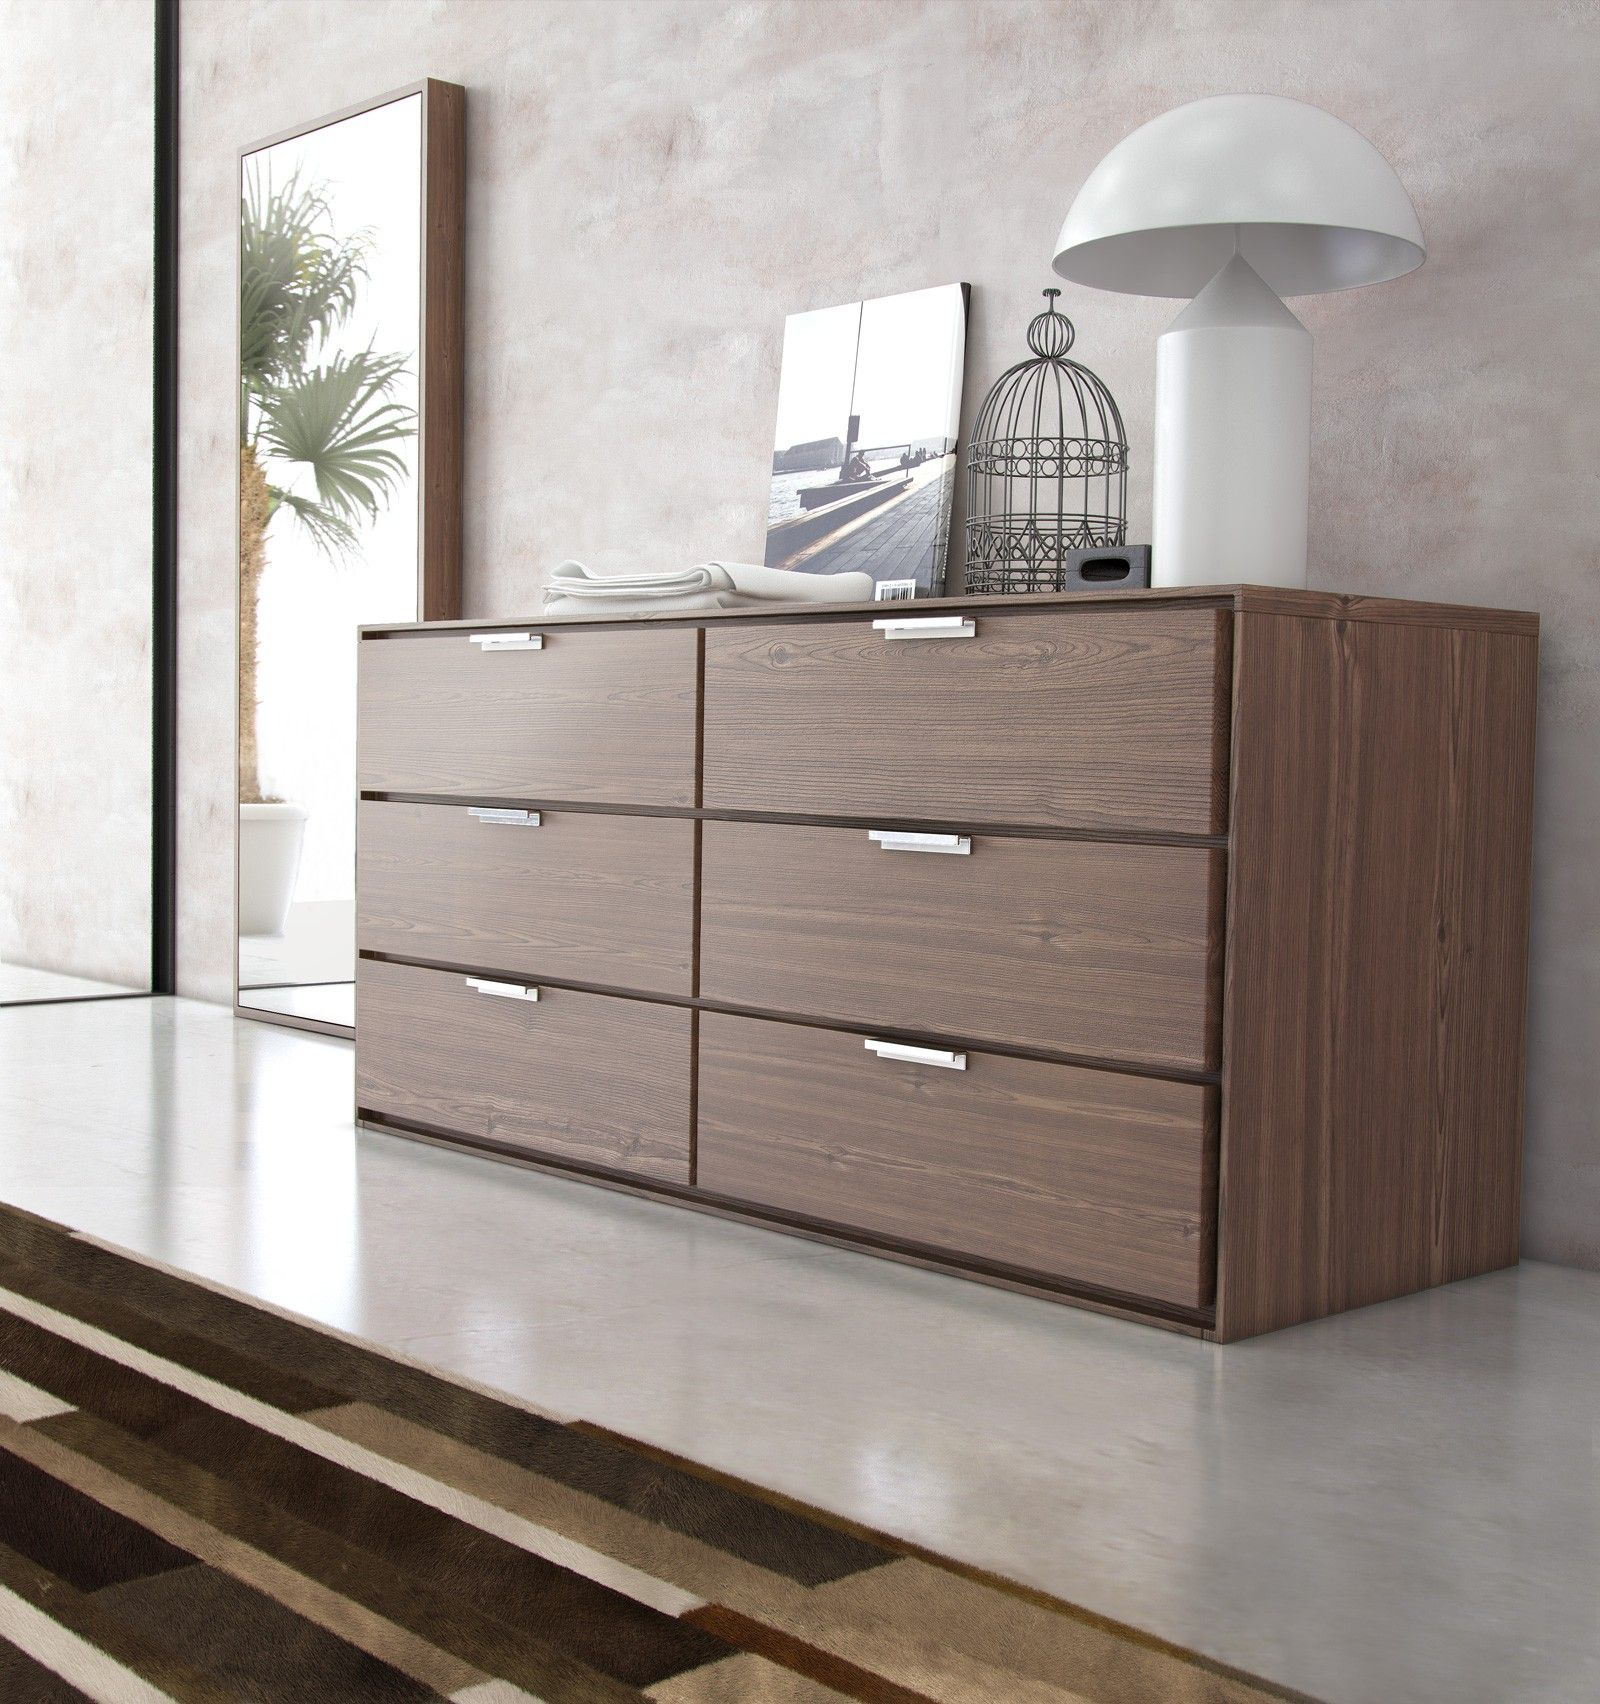 Nice Plywood 6 Drawer Modern Dresser With Chrome Pull Handle Cabinet On White Gloss Granite Floor